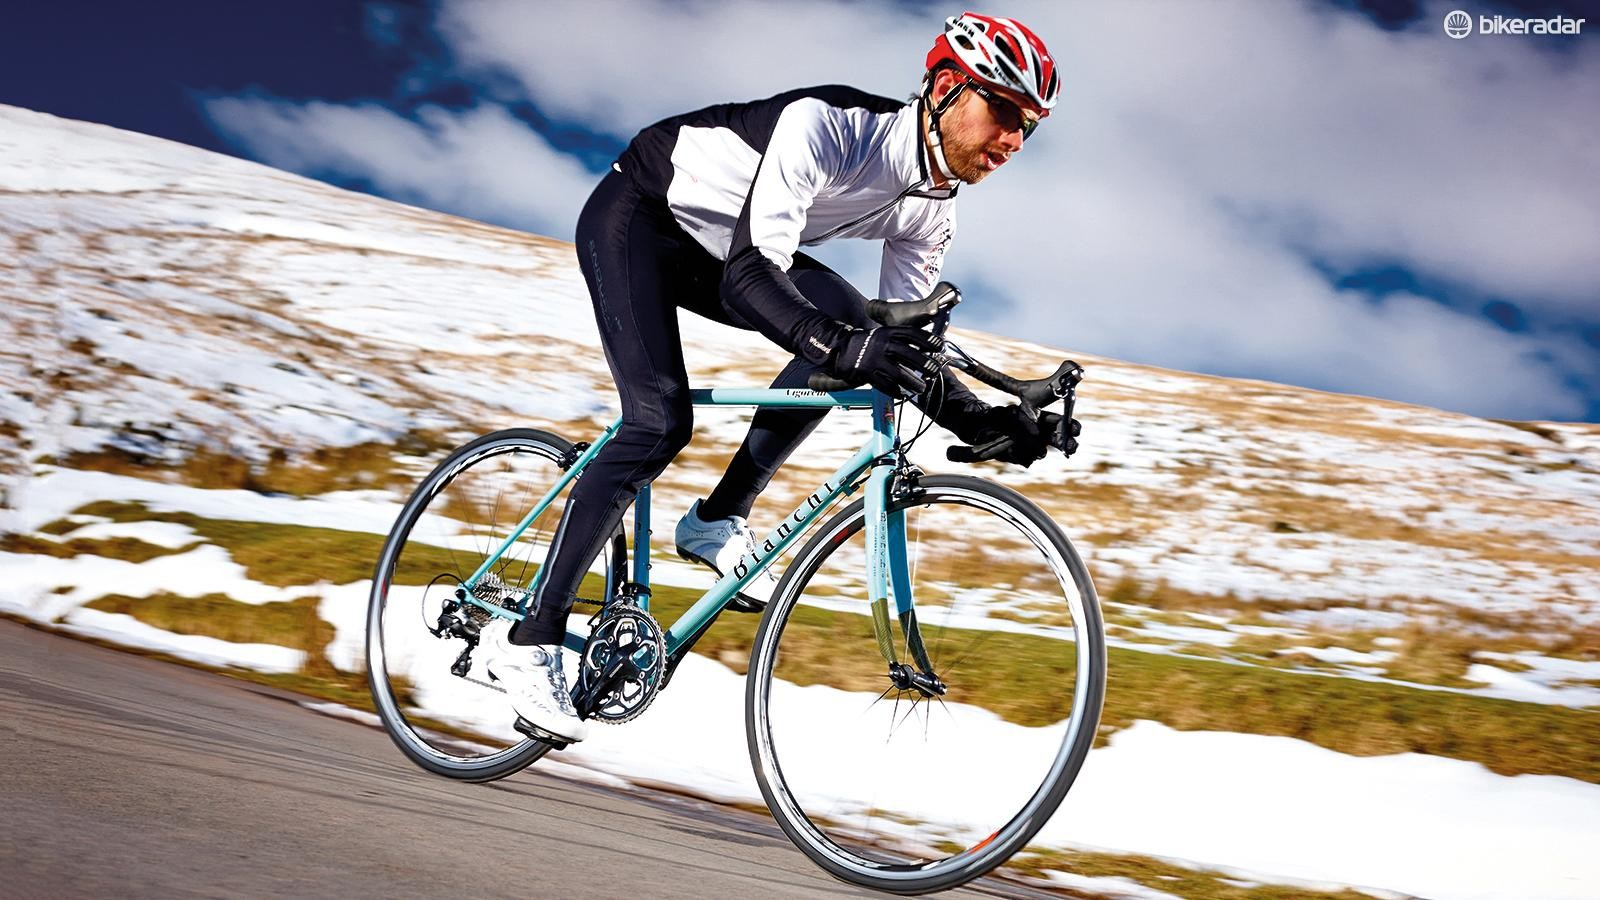 Bianchi's Vigorelli gets a vigorous winter workout